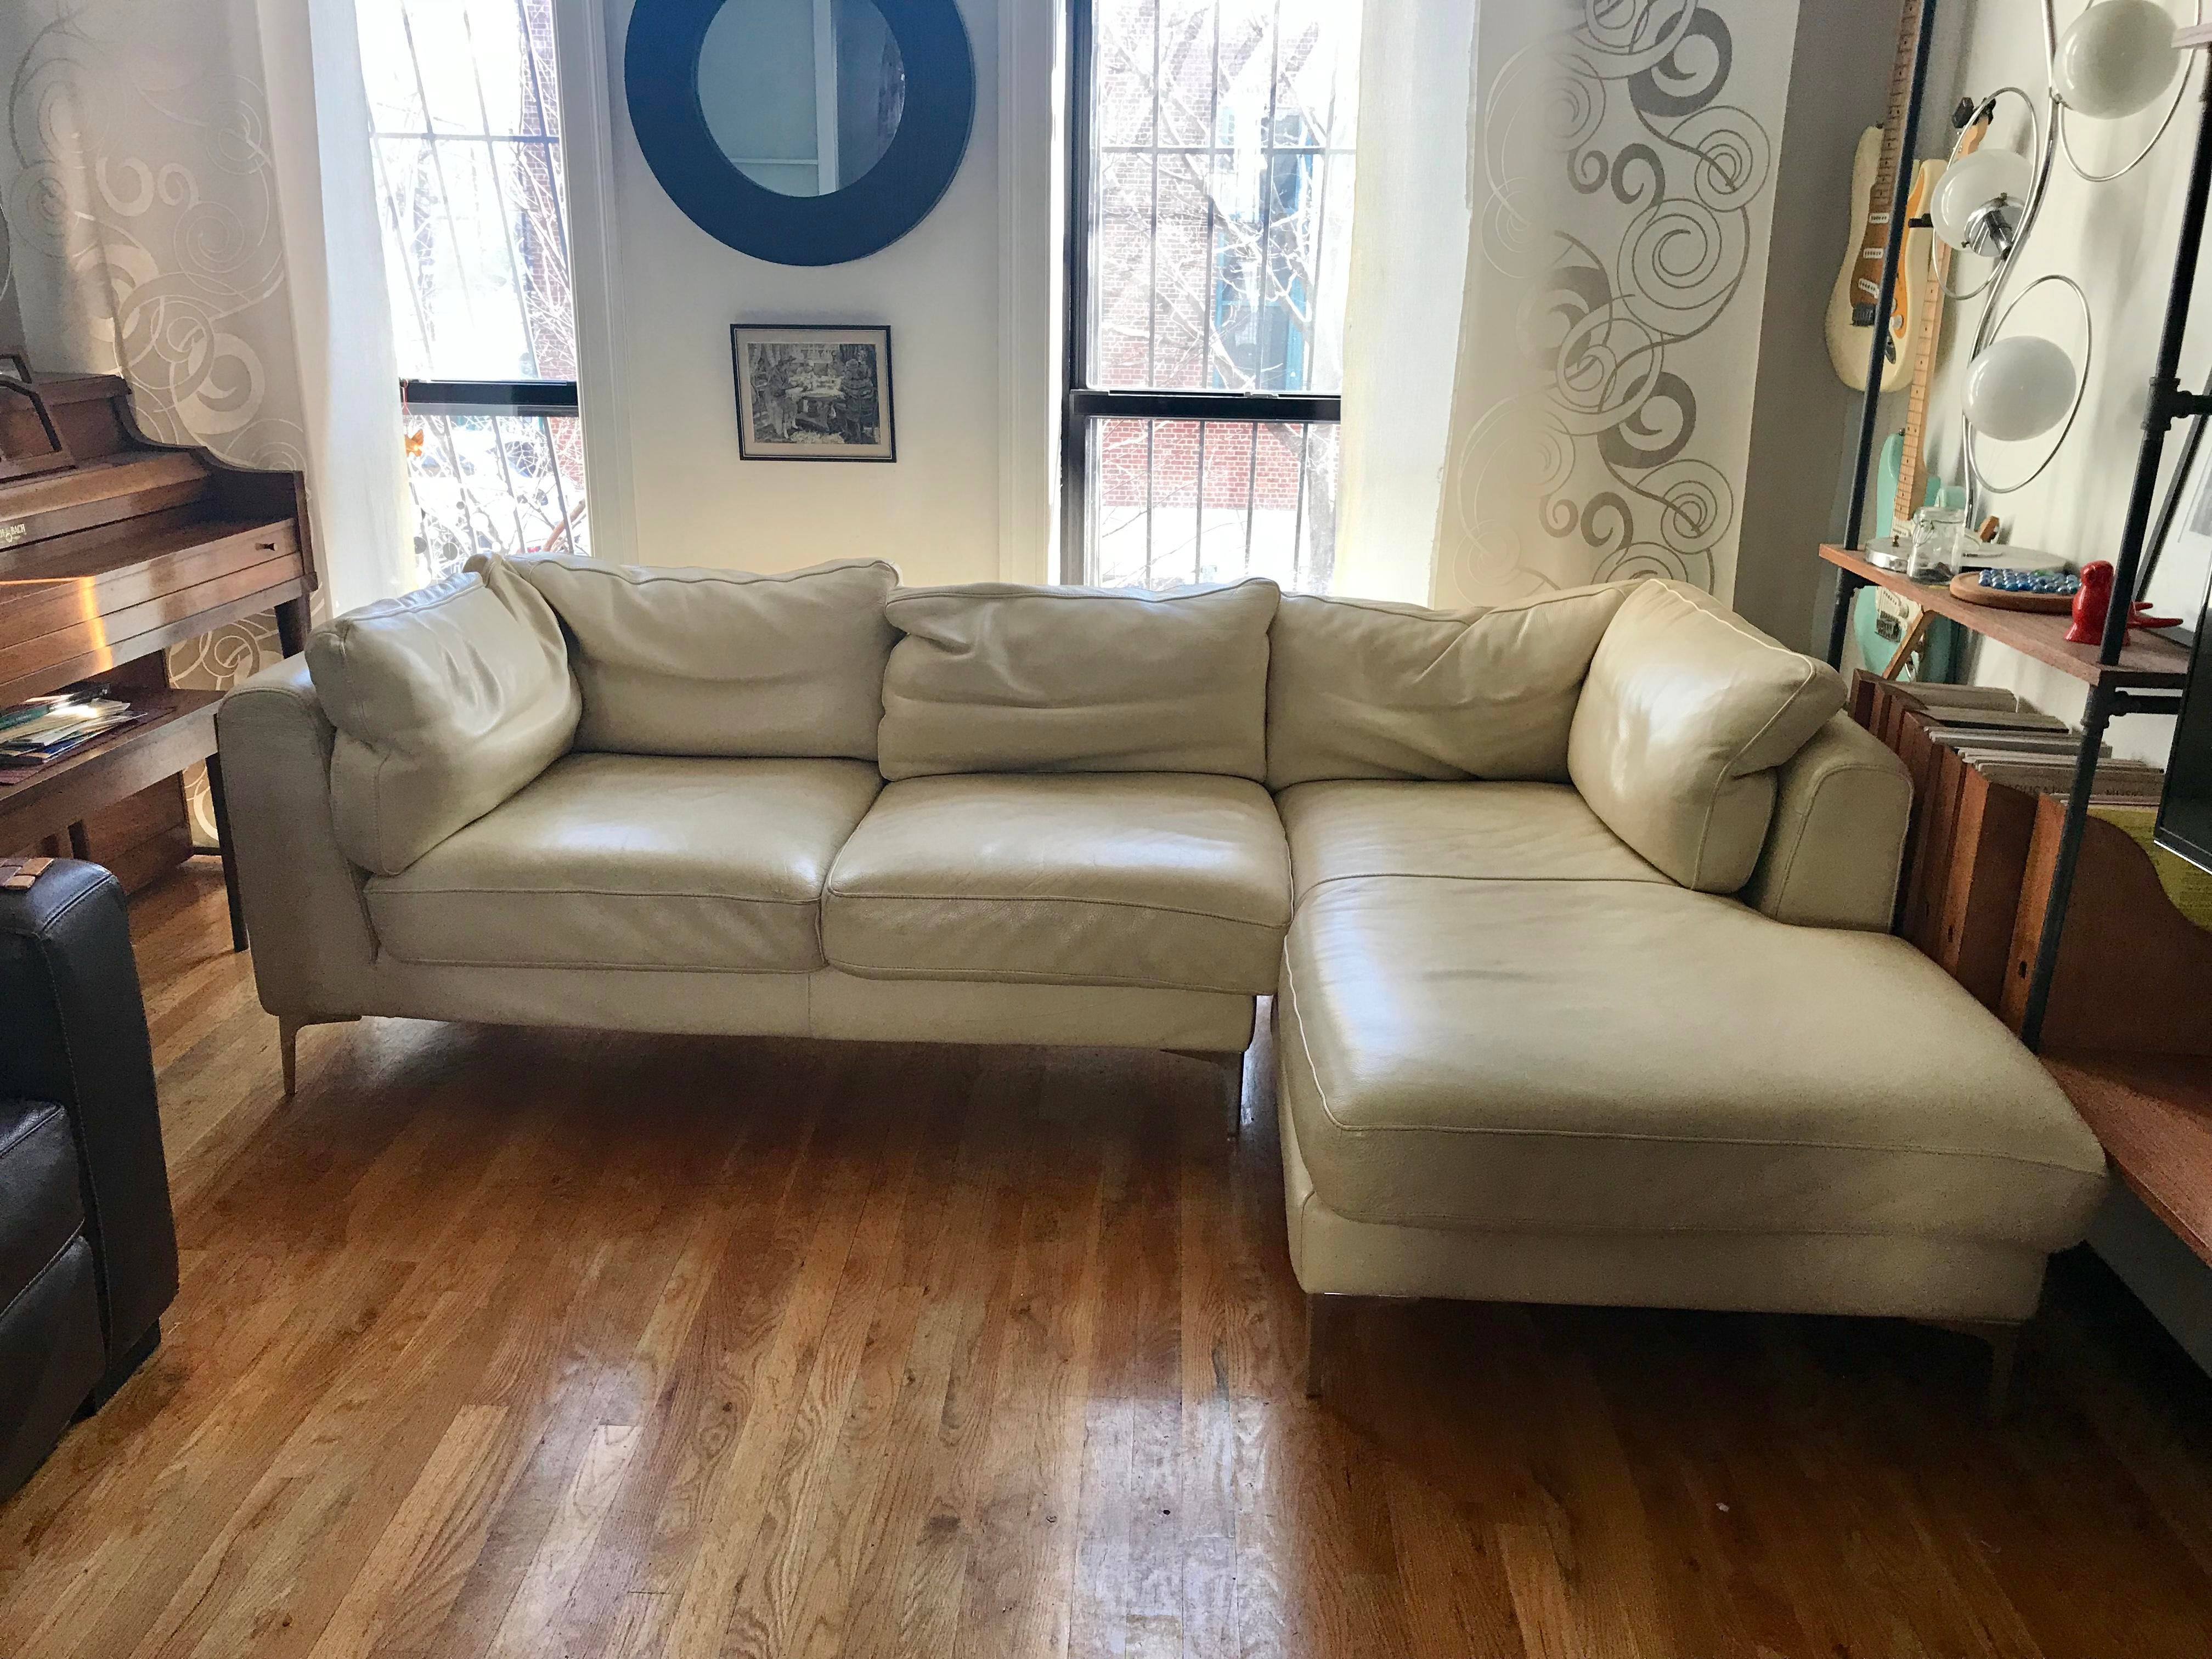 nicoletti lipari grey italian leather sofa chaise sofas with trundle beds for sale home and textiles